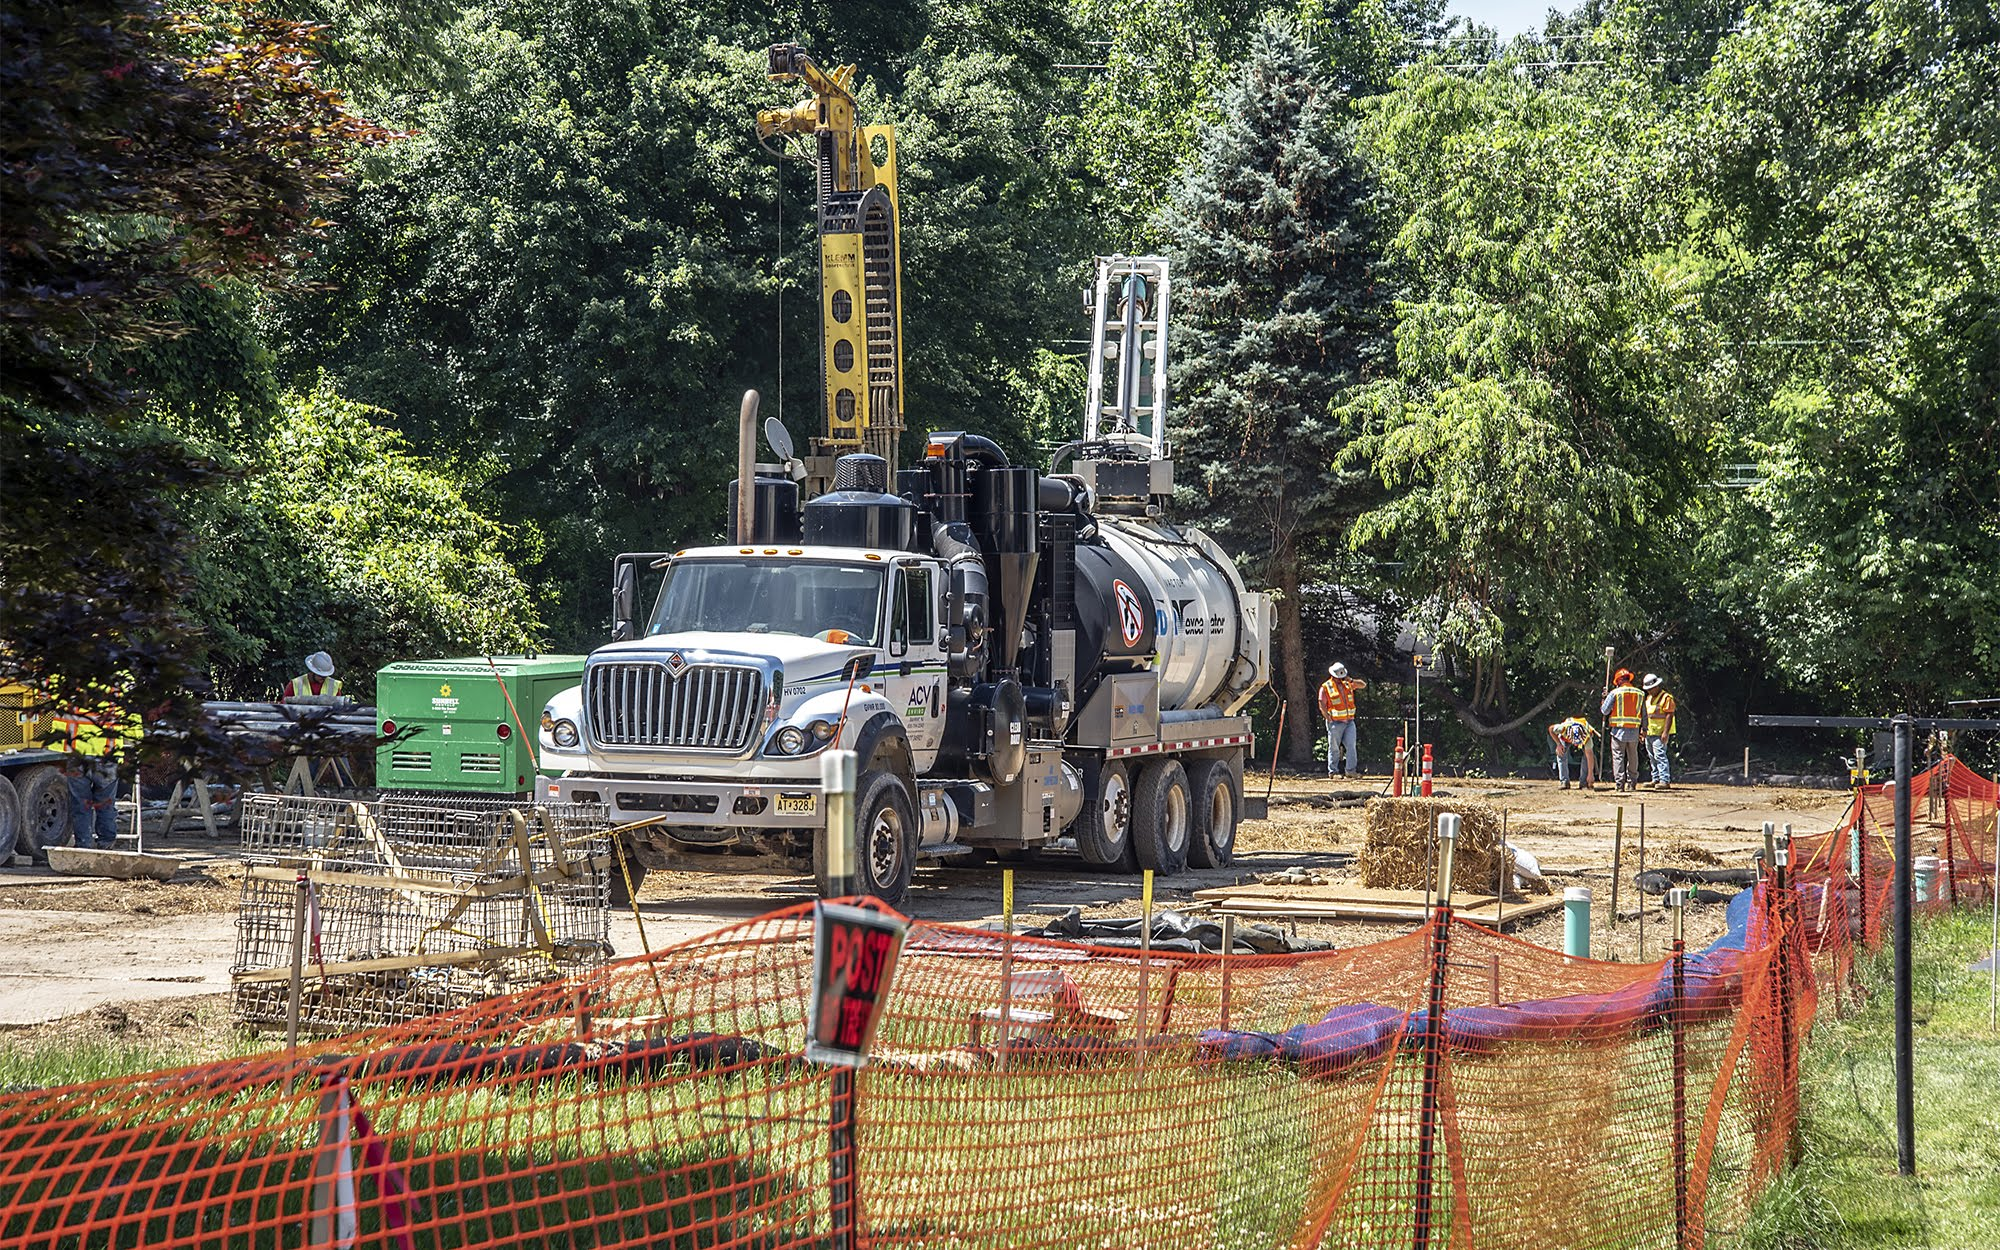 On June 25, 2018, contractors are working on a sinkhole at Lisa Drive in Exton, Pa. that was caused by drilling for the Mariner East 2 pipeline. It exposed an existing pipeline that had to be taken out of service. The contractor is trying to fill the hole with grout. (Photo by Teake Zuidema/PublicSource)